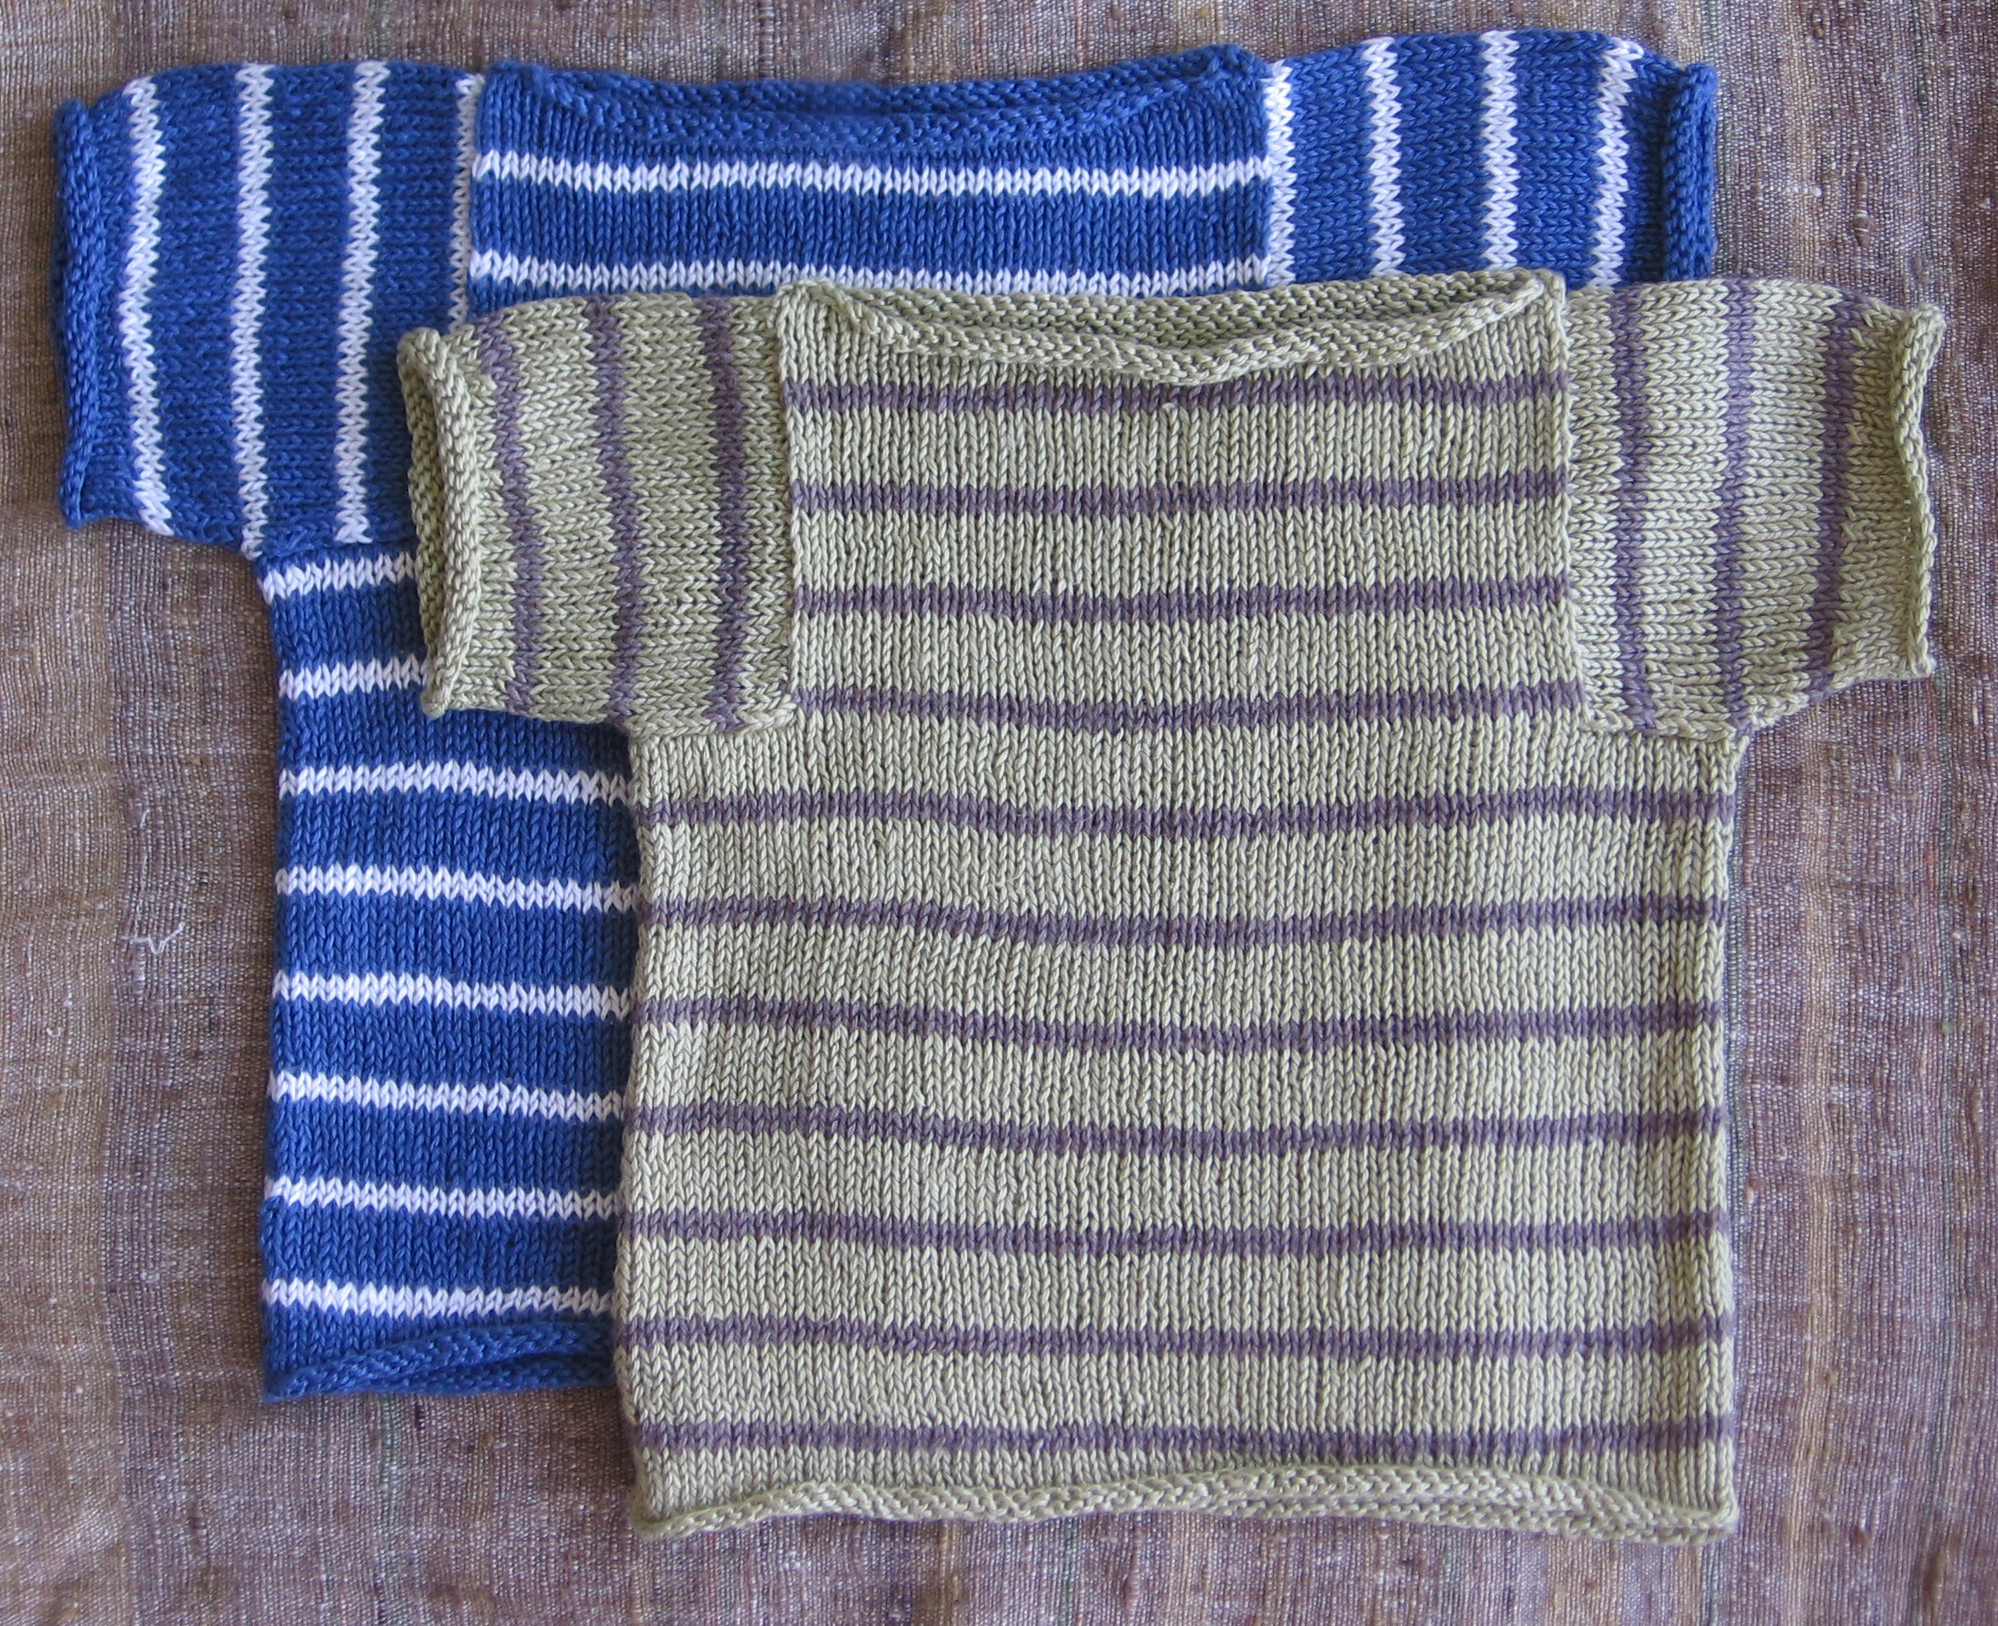 knitting pattern   living in the woods and making stuff